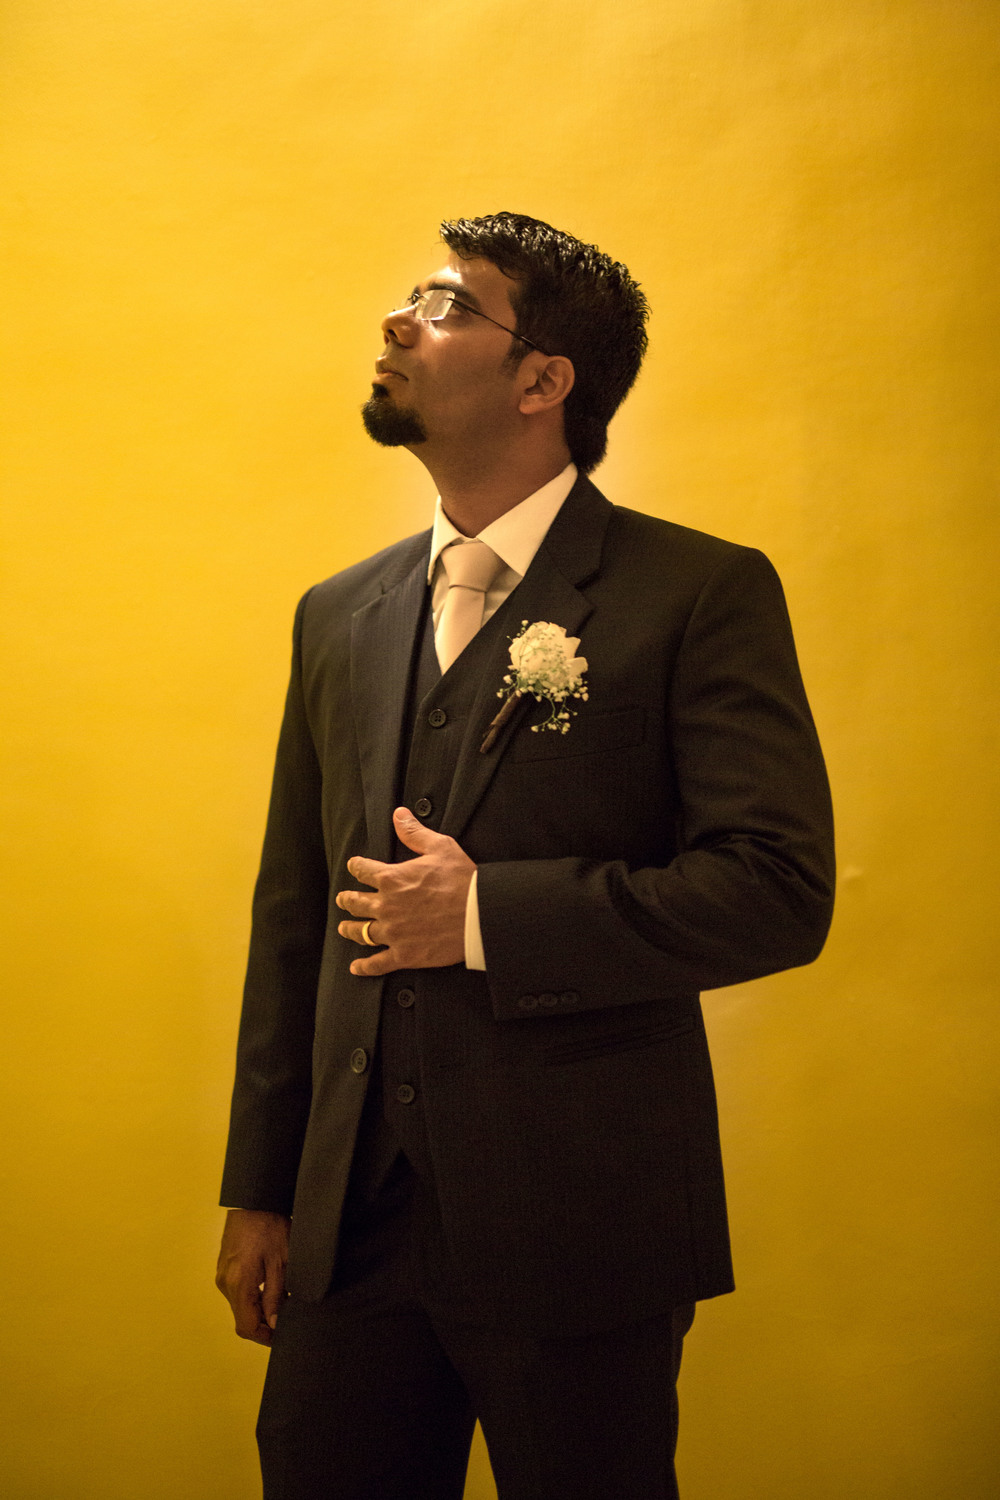 Groom-portrait-4